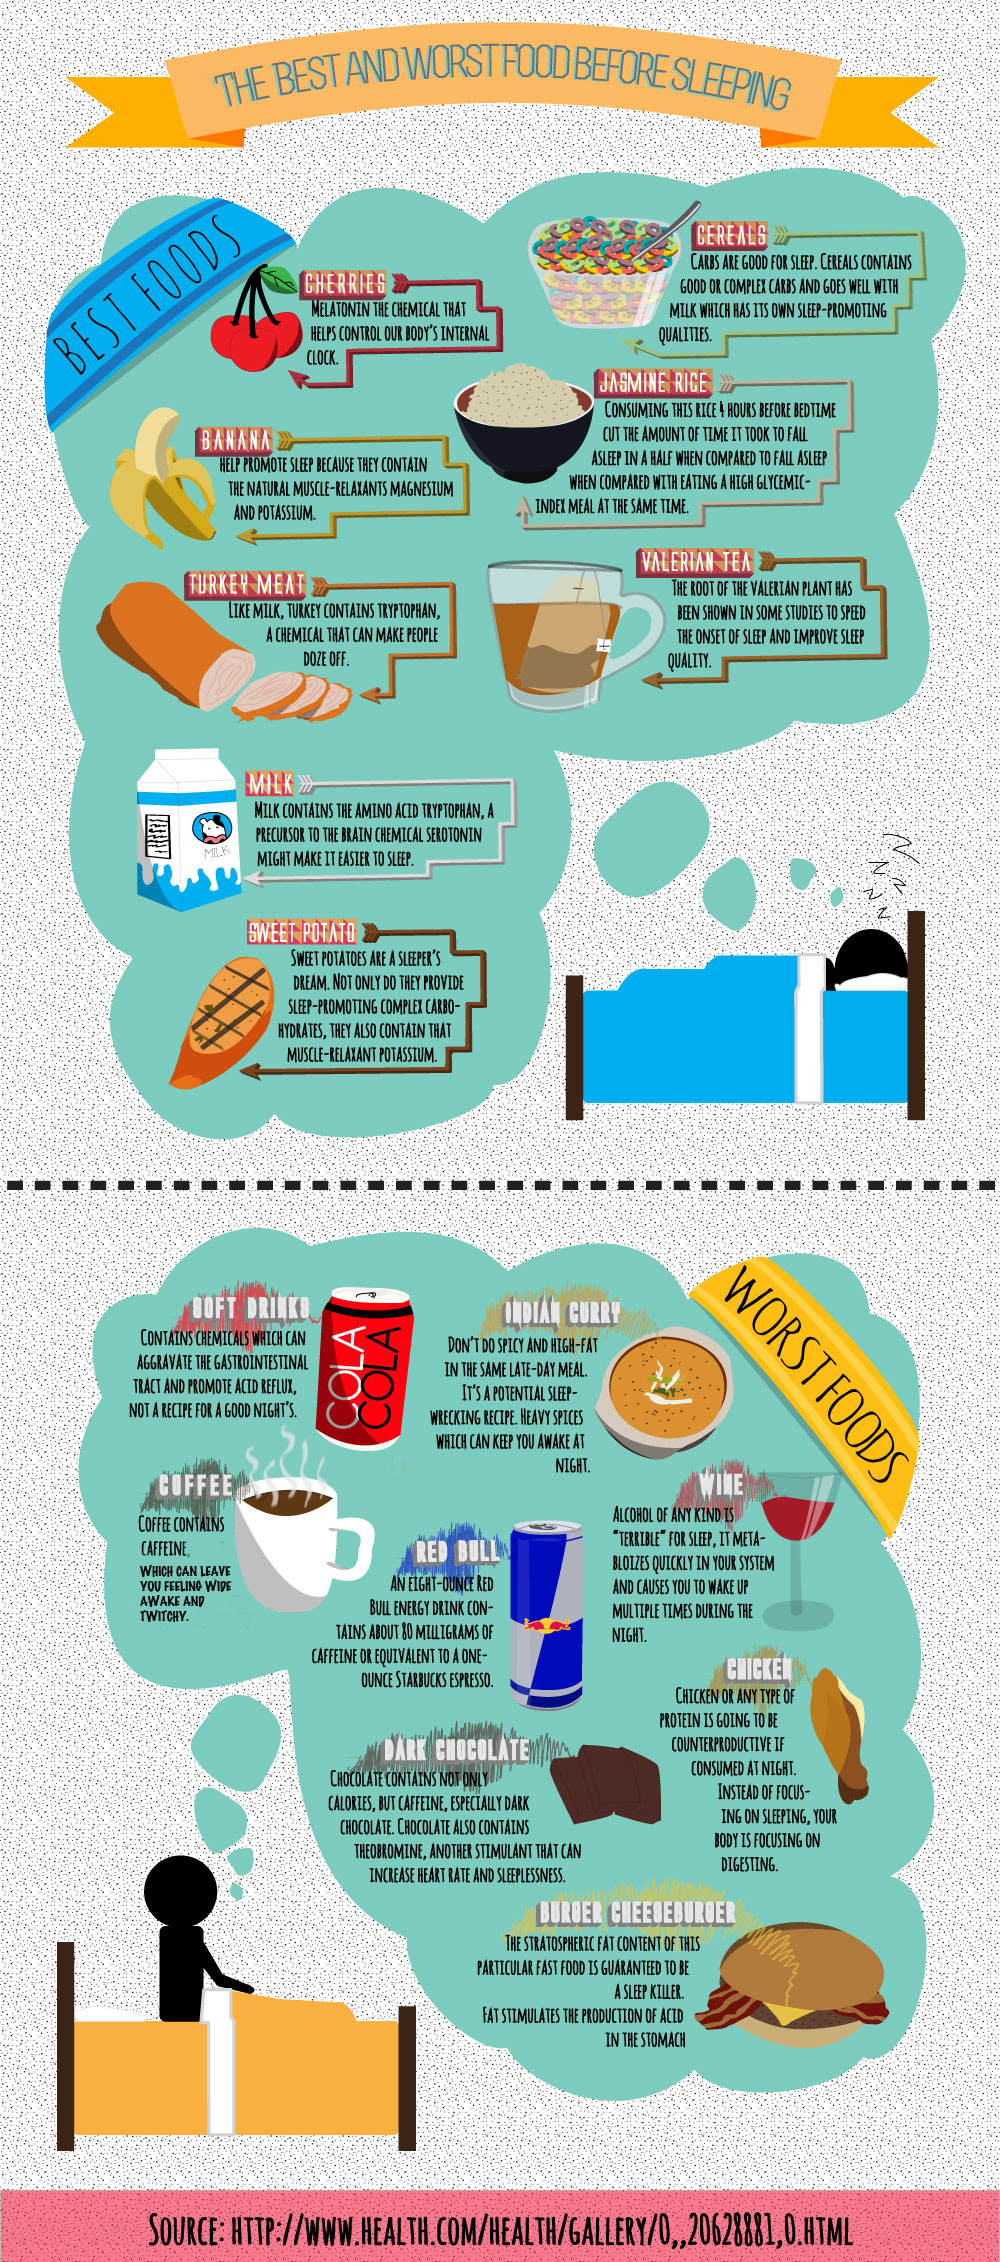 material-world-singapore-food-infographic-copy